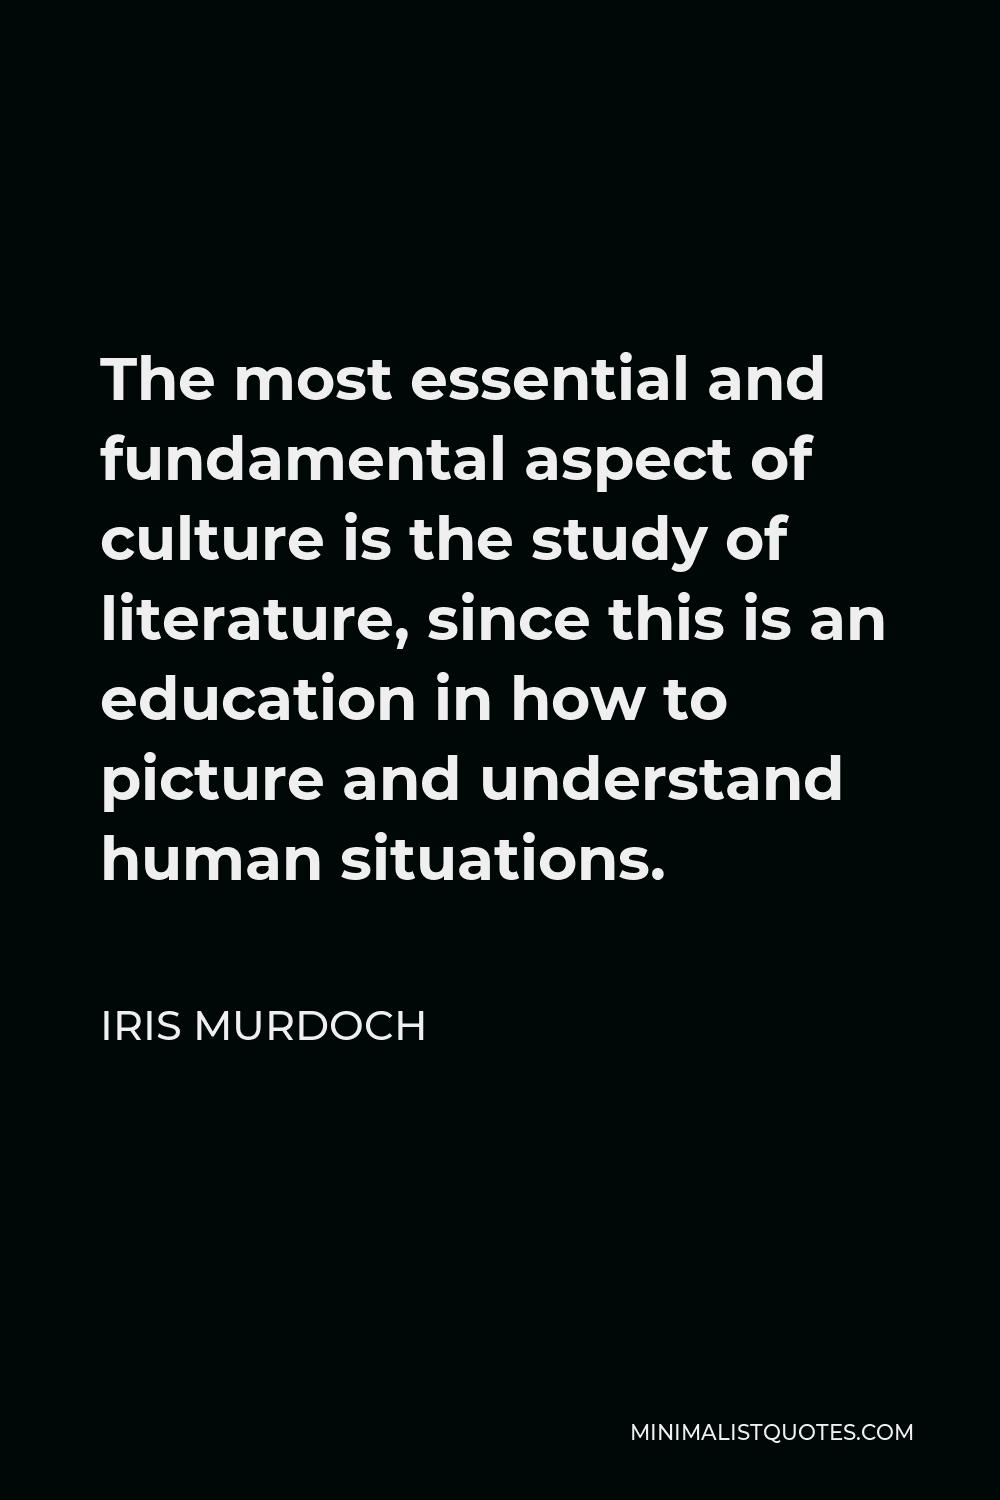 Iris Murdoch Quote - The most essential and fundamental aspect of culture is the study of literature, since this is an education in how to picture and understand human situations.